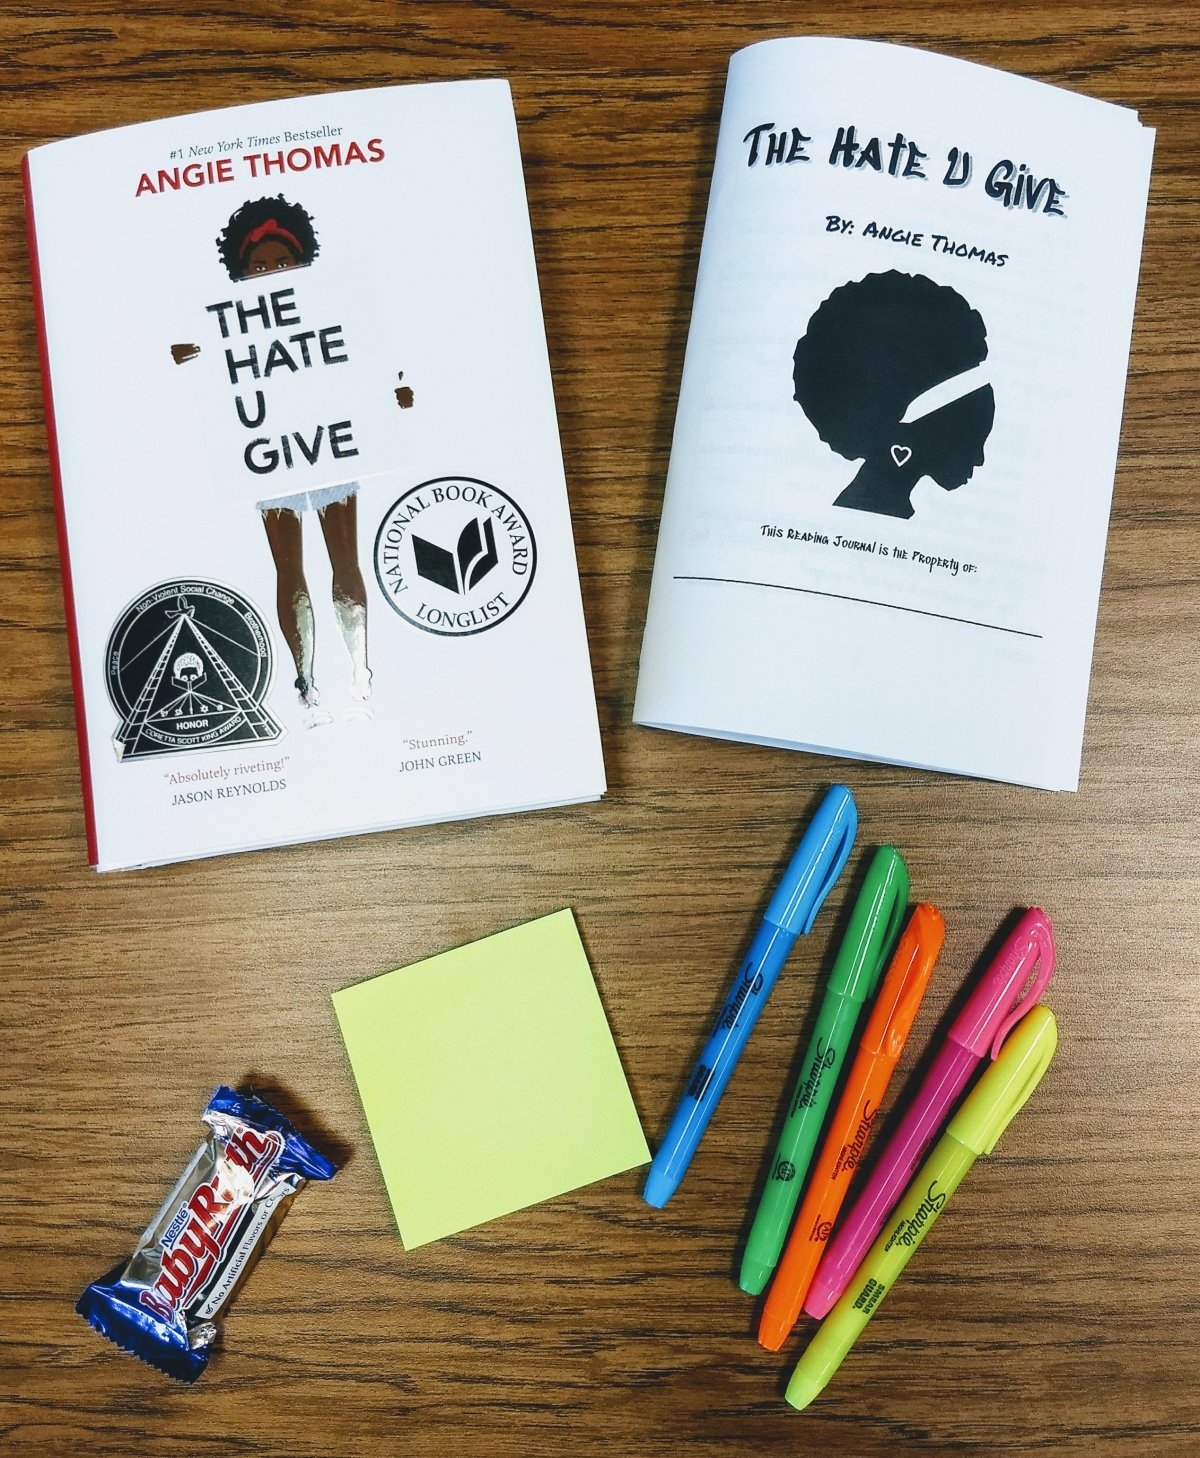 Supplies for annotating a text